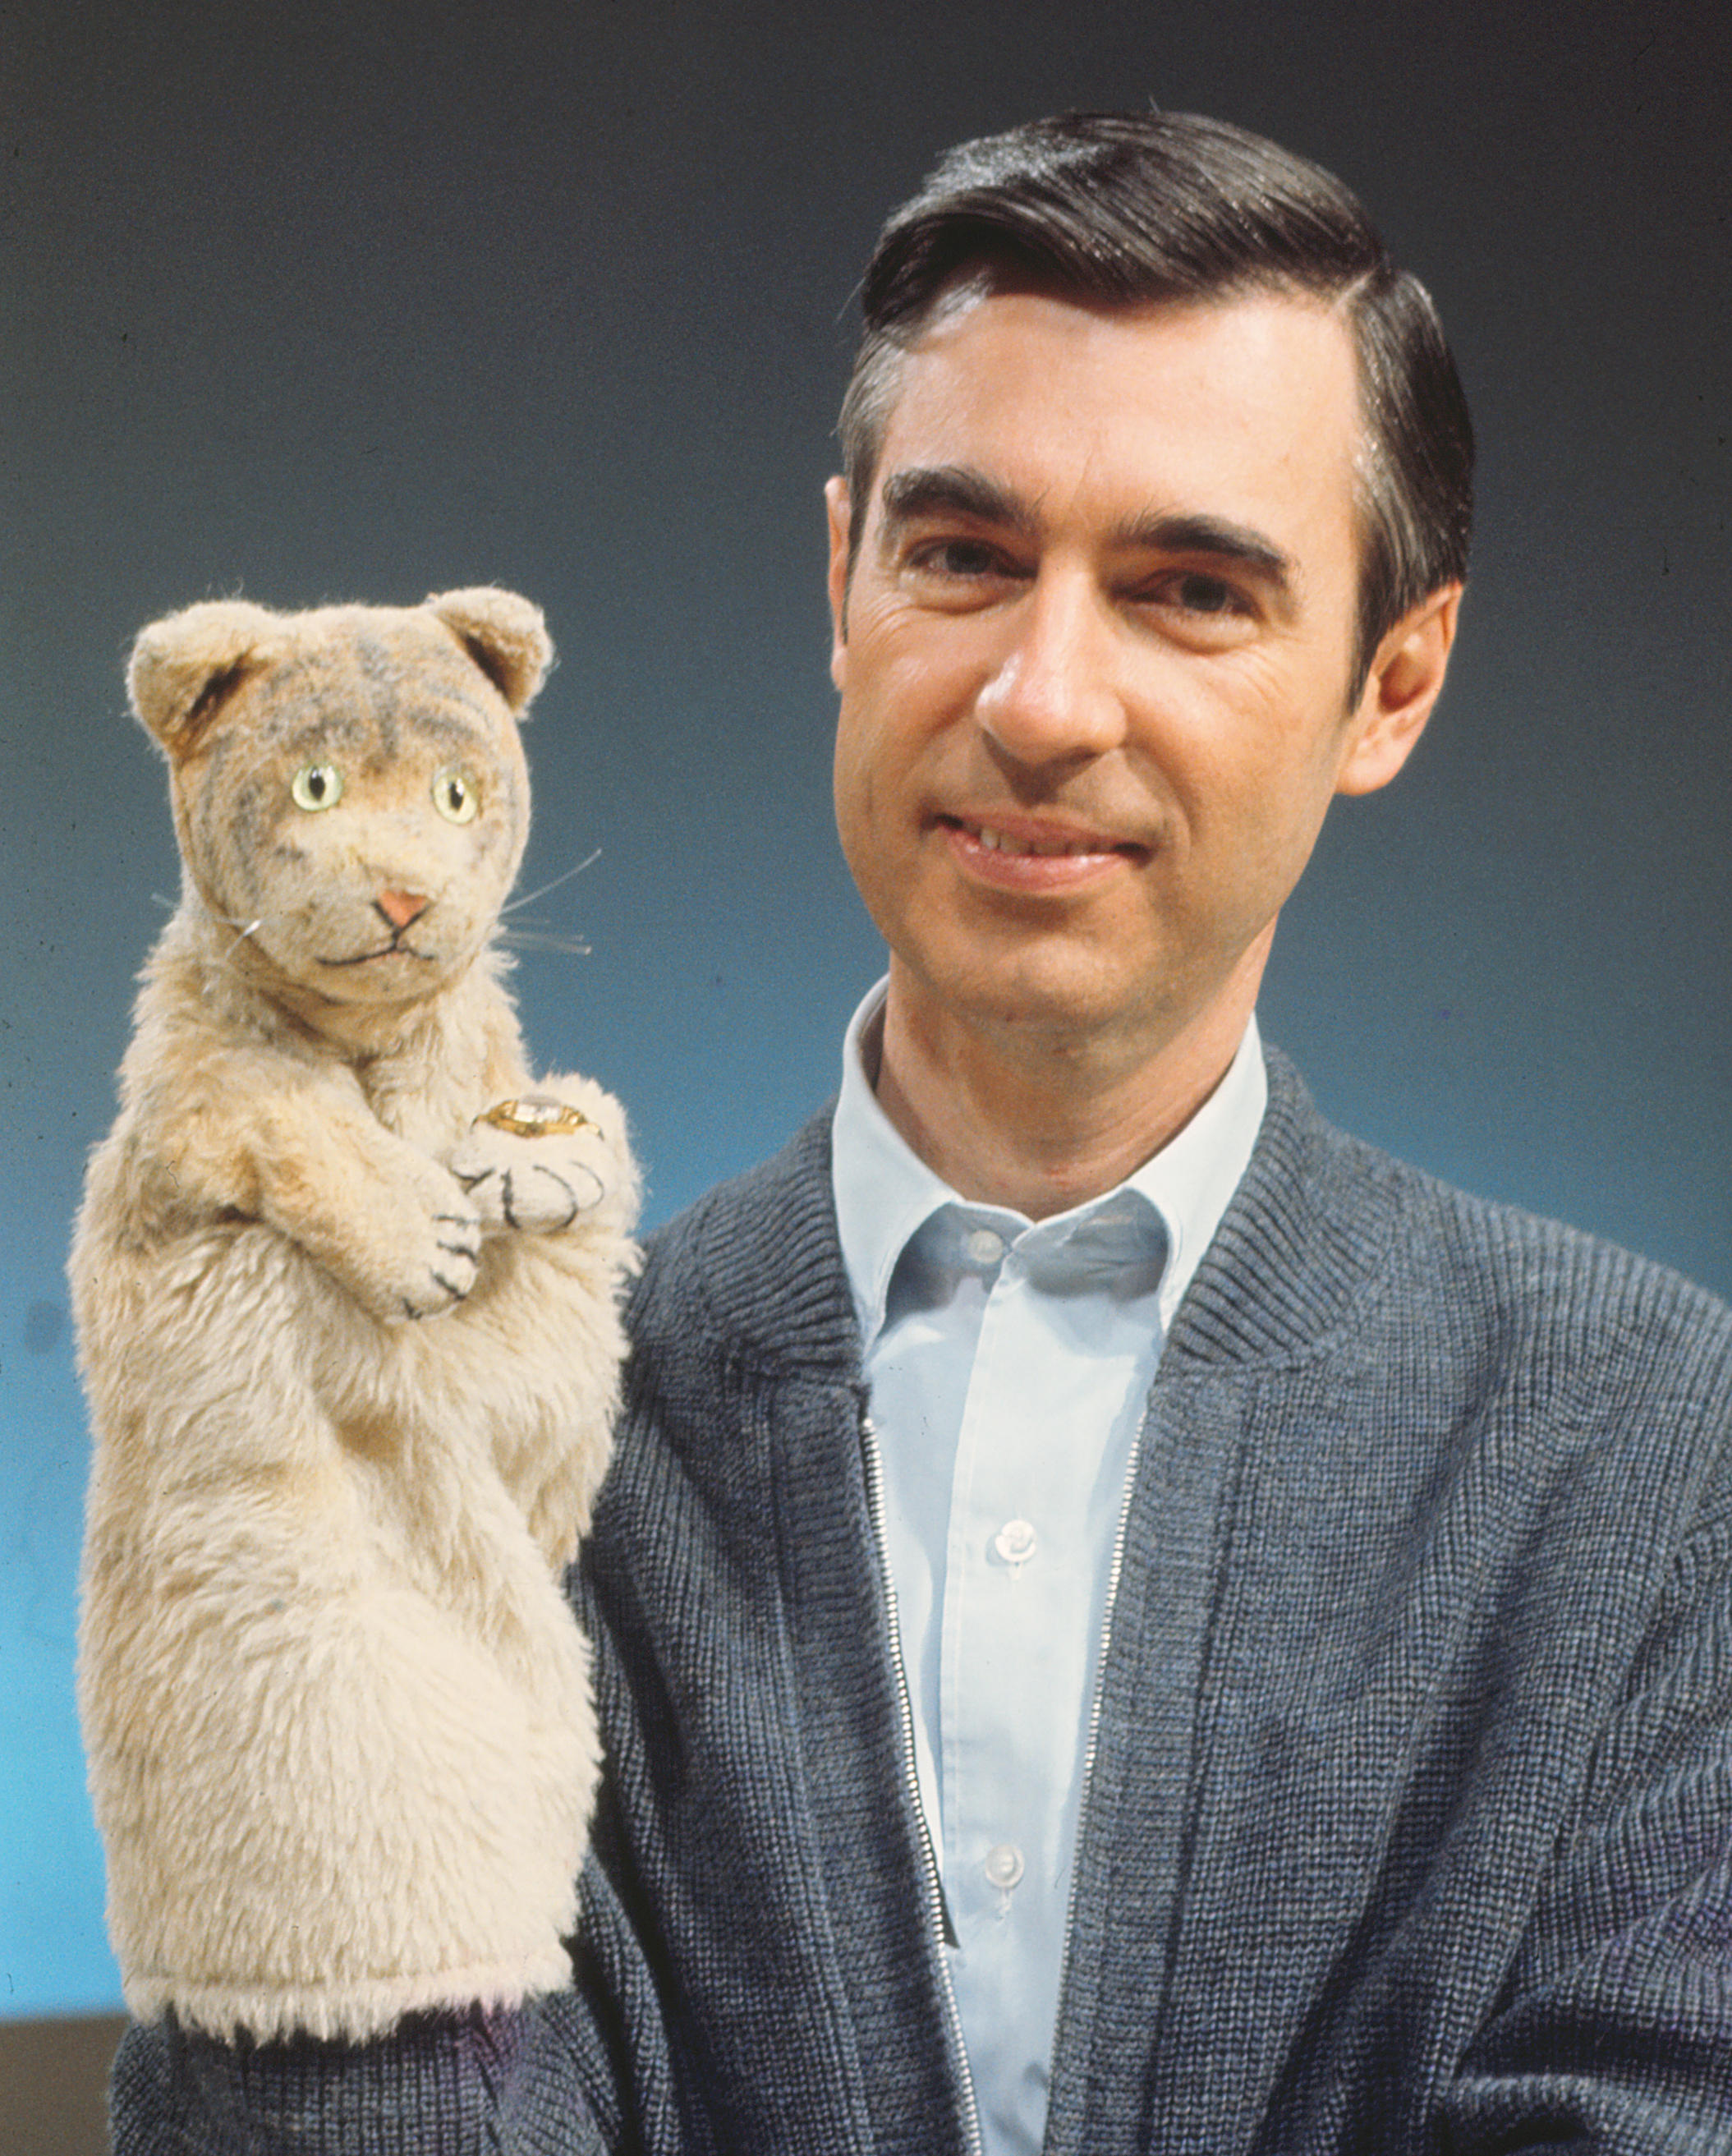 020f7779306c Along with his trusty puppet, Daniel Tiger, Fred Rogers explained a complex  world to kids in terms they could understand. His goal, says filmmaker  Morgan ...